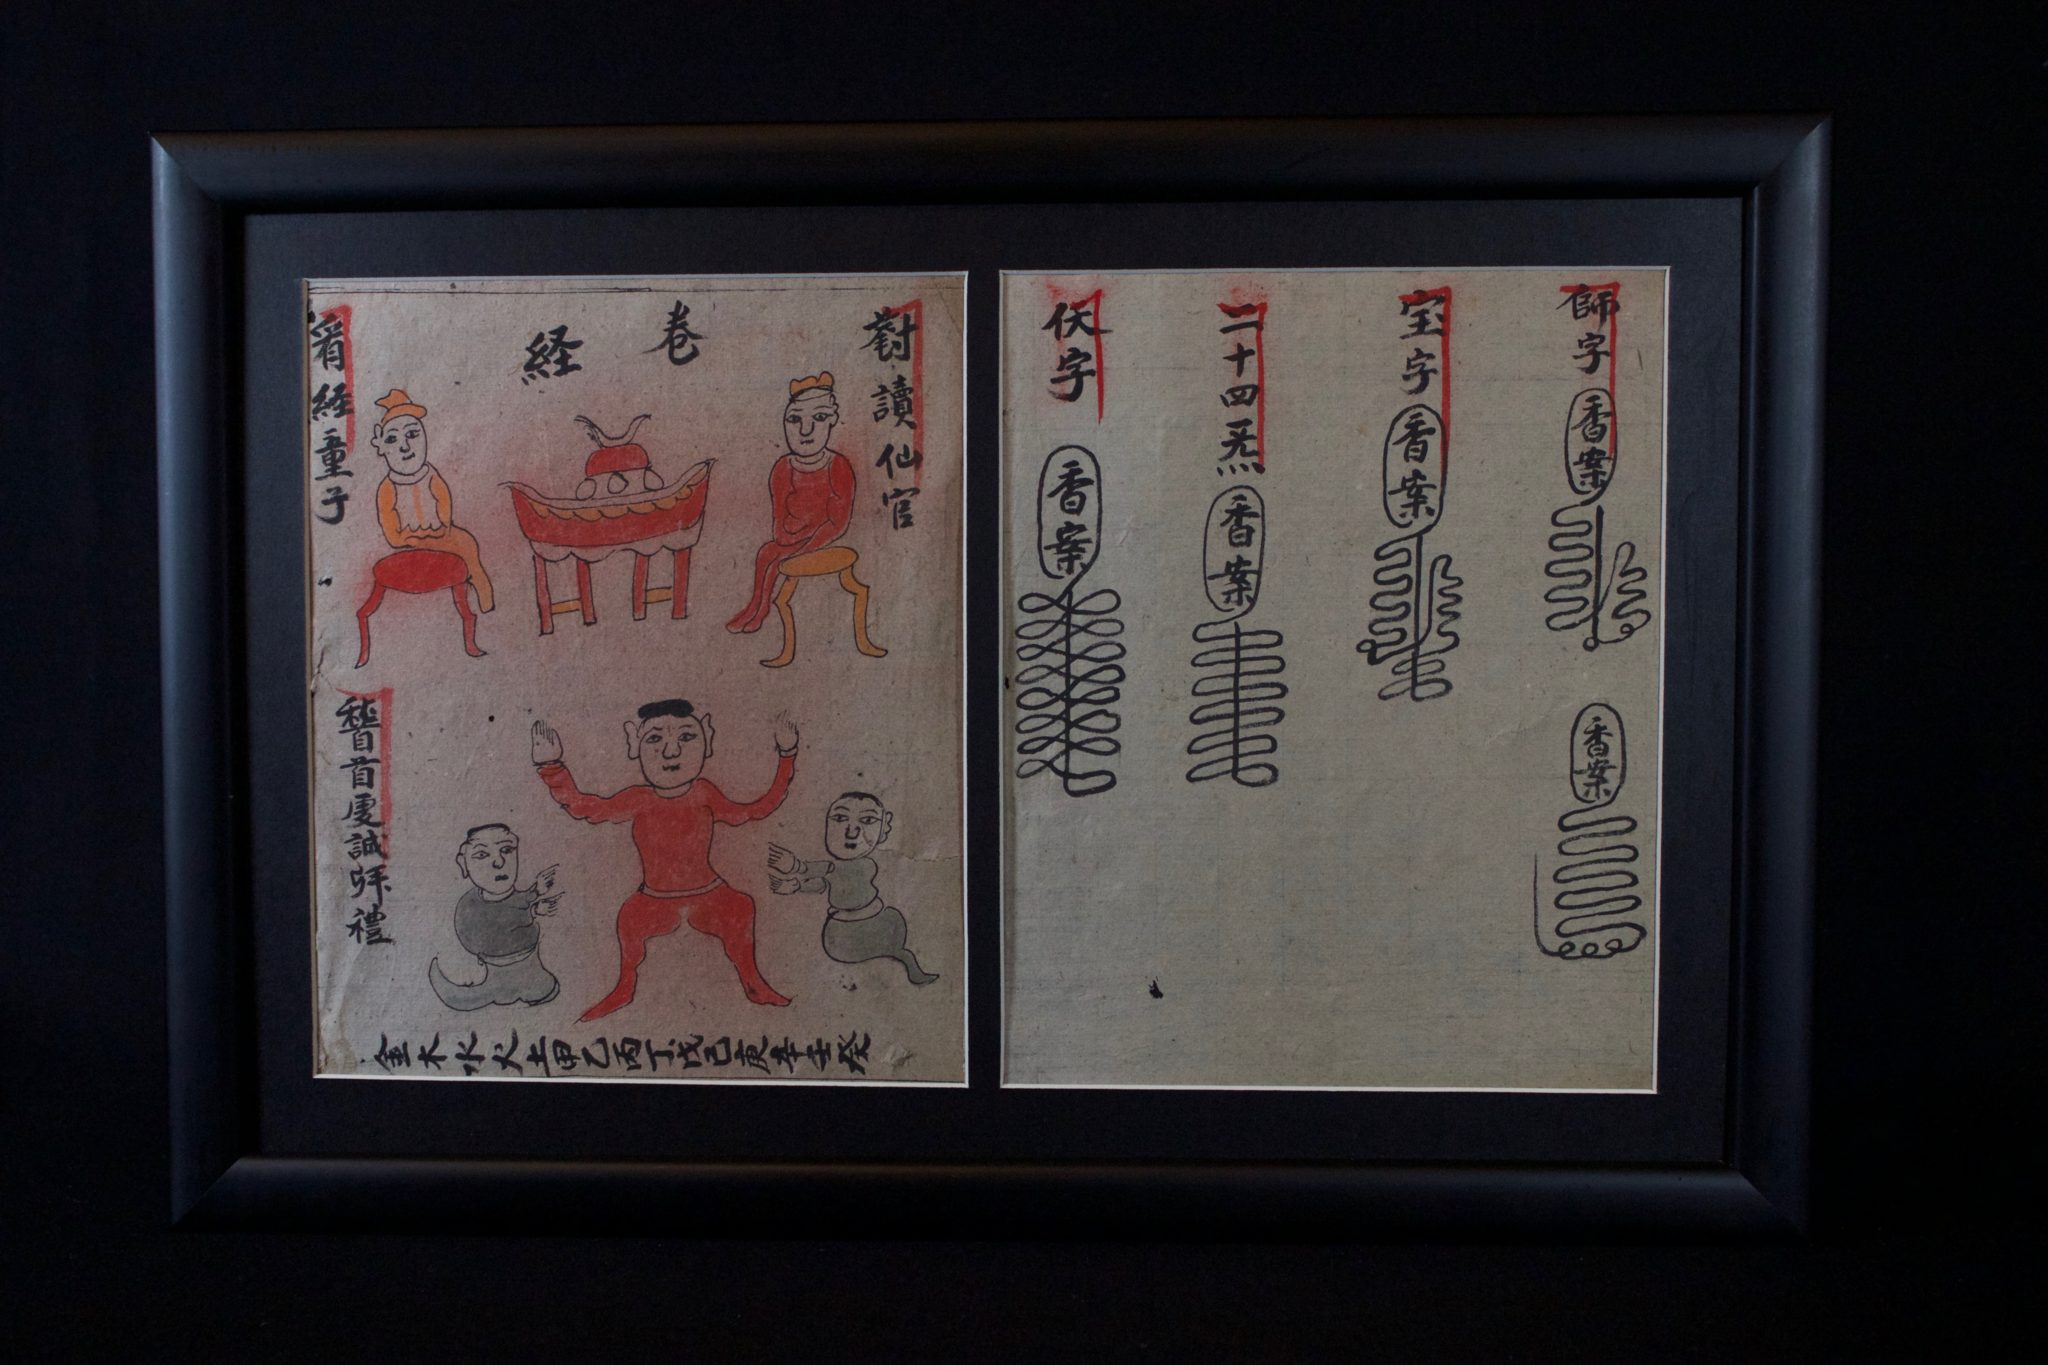 "Pages from a Shamanic Book, Vietnam, Cao Lan people, Mid 20th c, Ink and watercolor handwritten on Mulberry paper, It is a book for making astrological predictions using the East Asian zodiac's twelve animal characters. The text of the book uses images, maps and text to describe in detail, for the learned shaman, how to navigate this complex system of looking into the future. 12"" x 17 ¾"" x ¾"", $260."